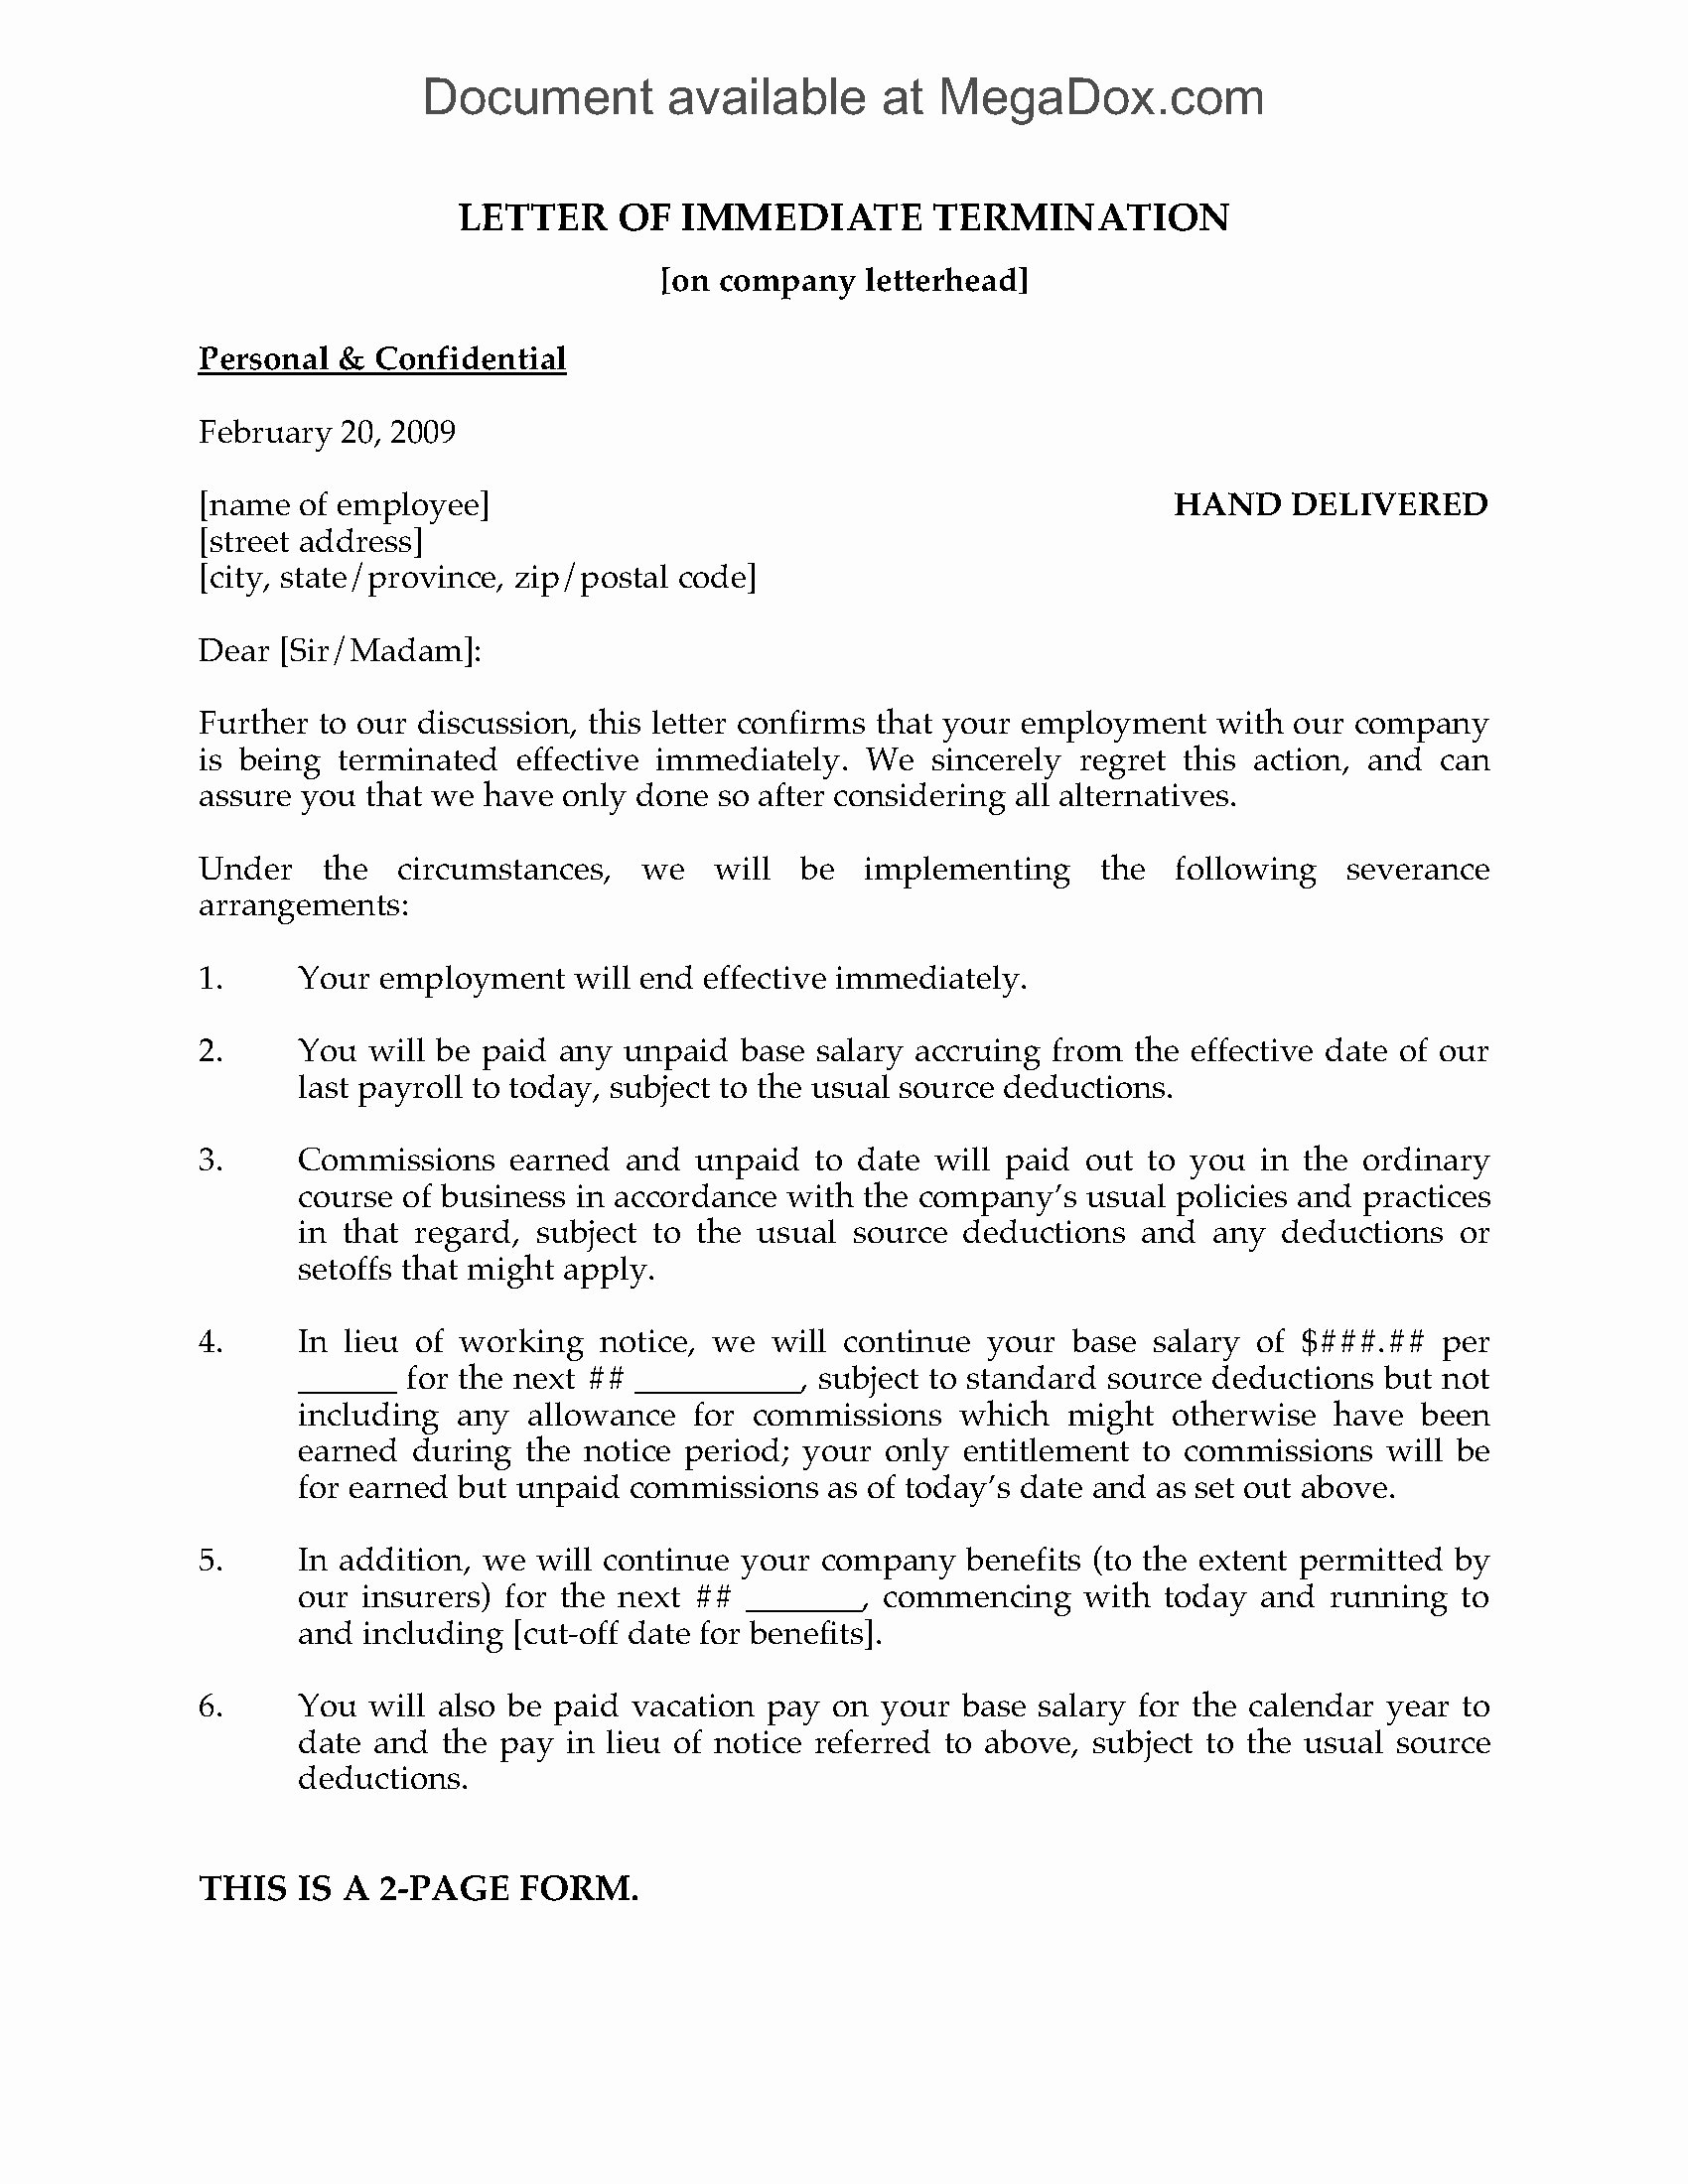 Letter Of Termination to Employee Unique Letter Of Immediate Termination Of Employment